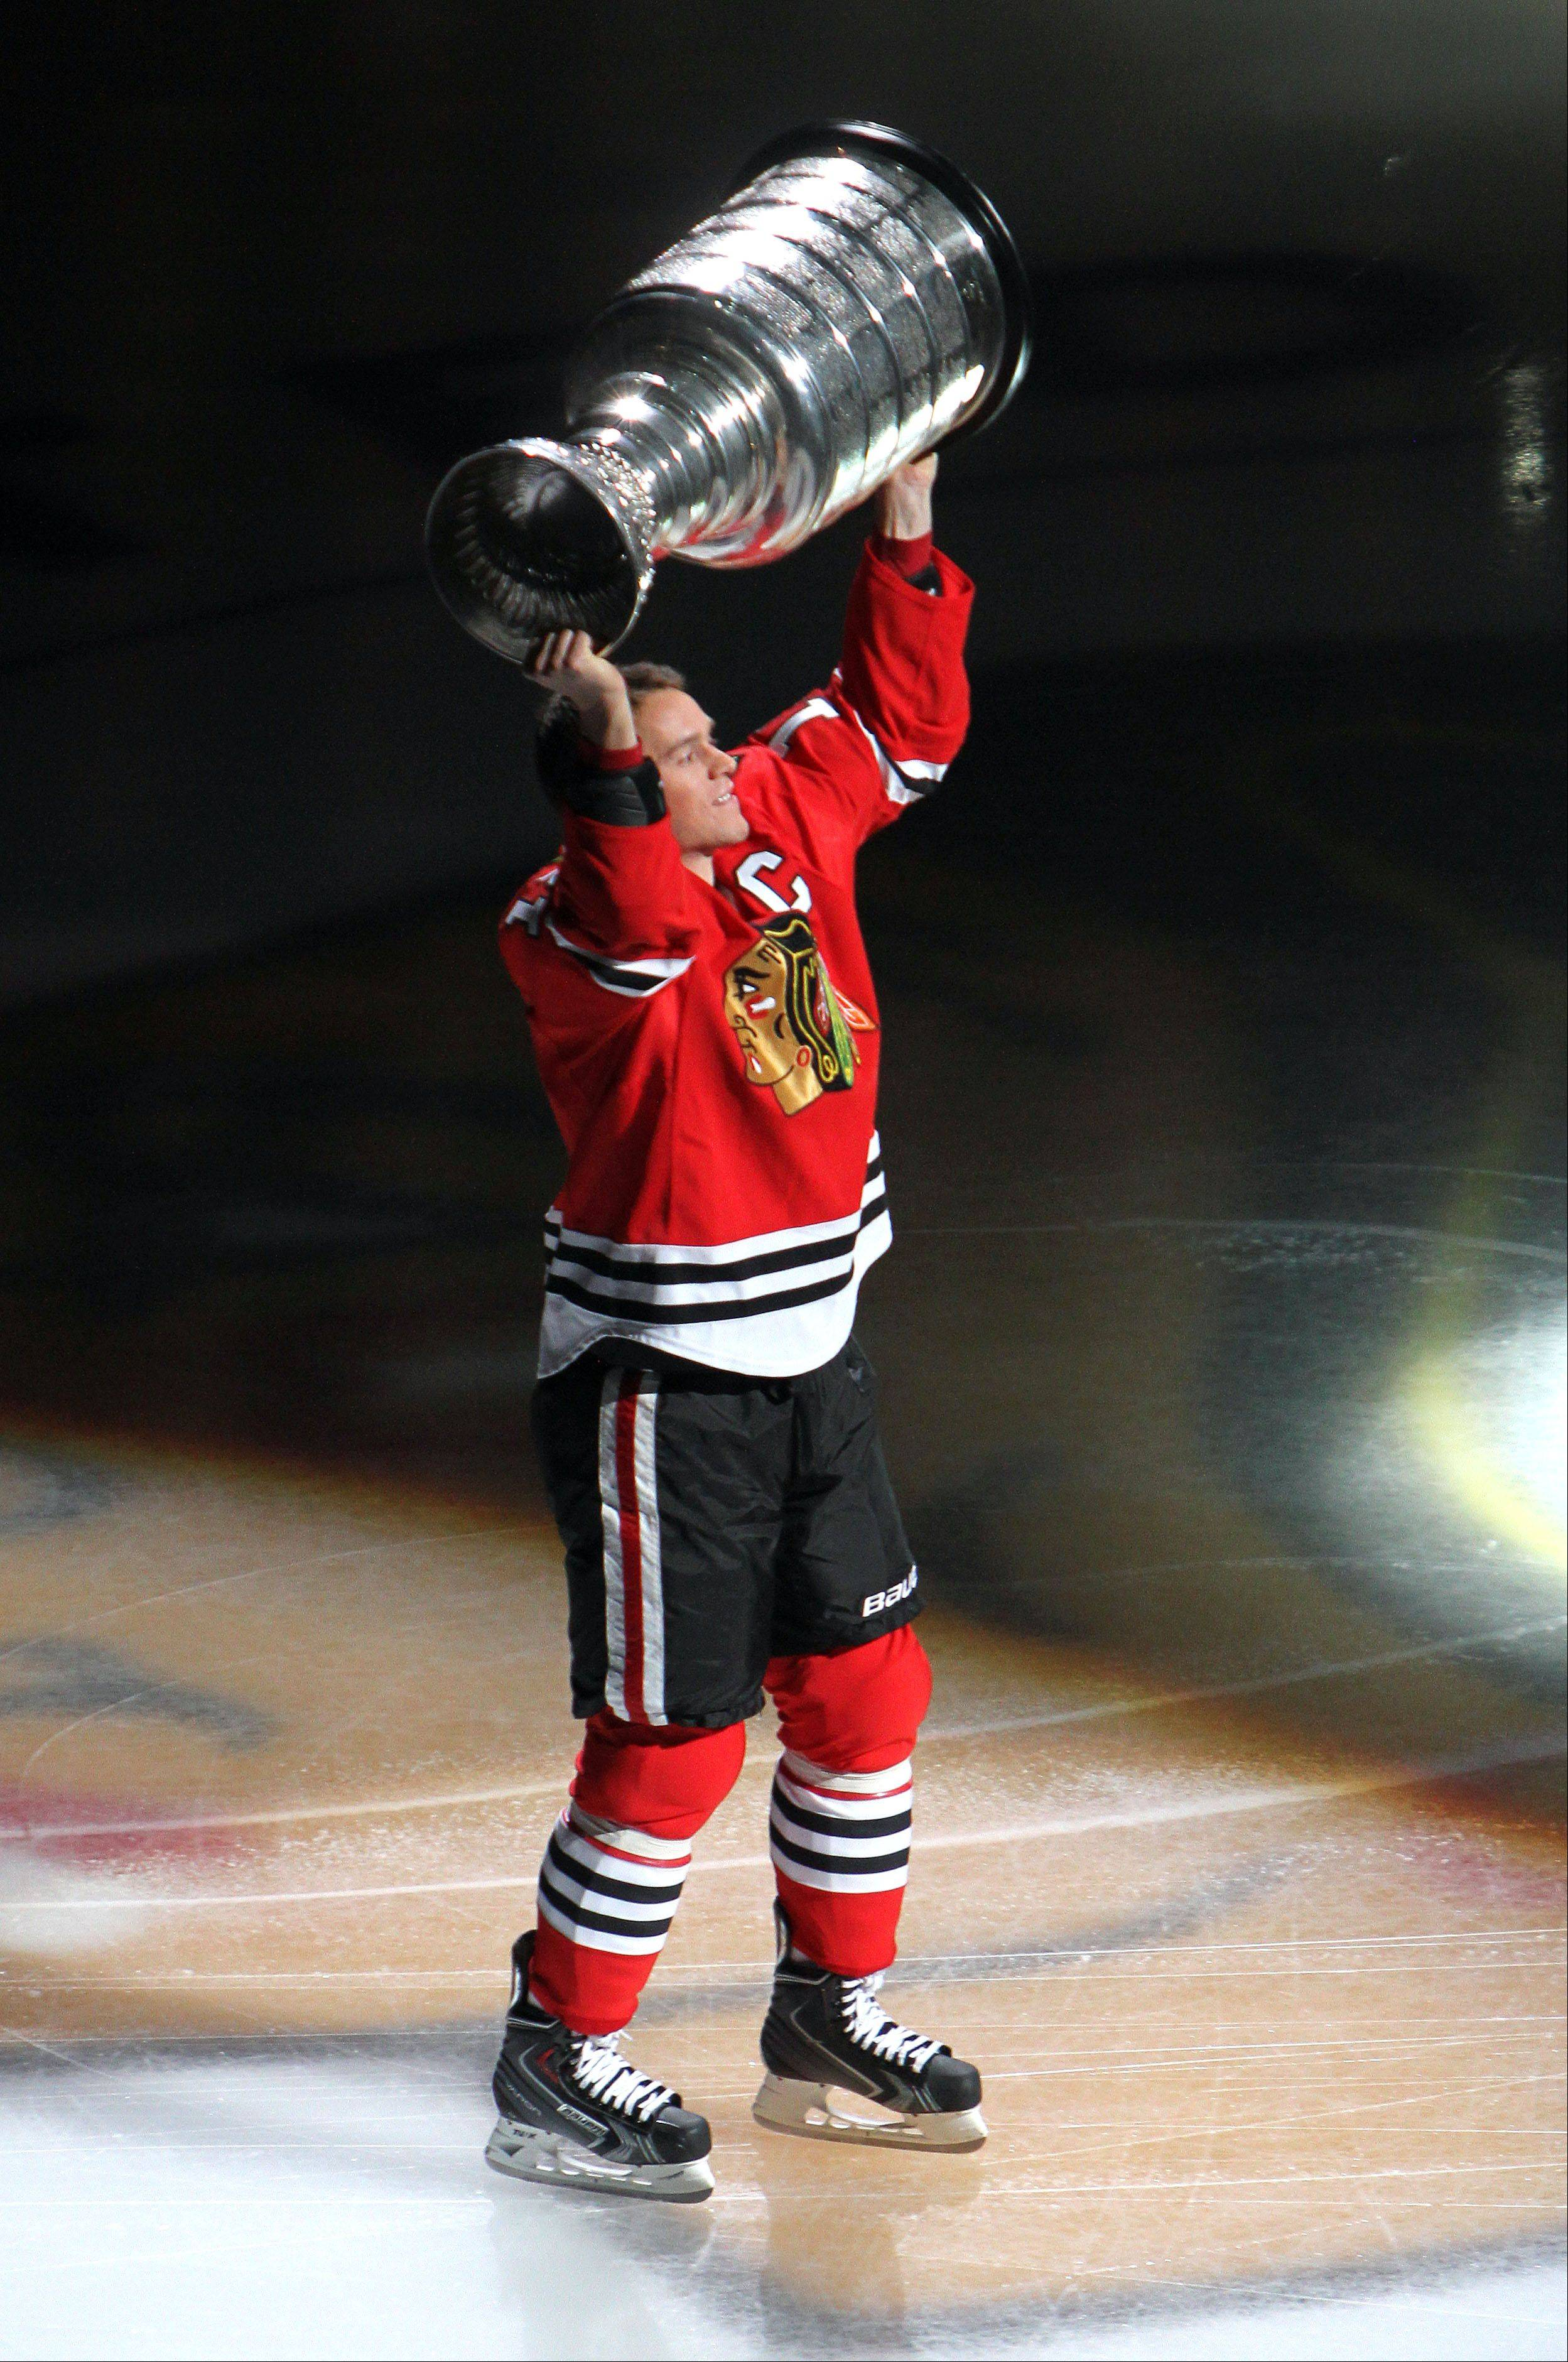 Blackhawks captain Jonathan Toews carries the Stanley Cup during a banner ceremony before Tuesday's season opener against the Washington Capitals at the United Center.